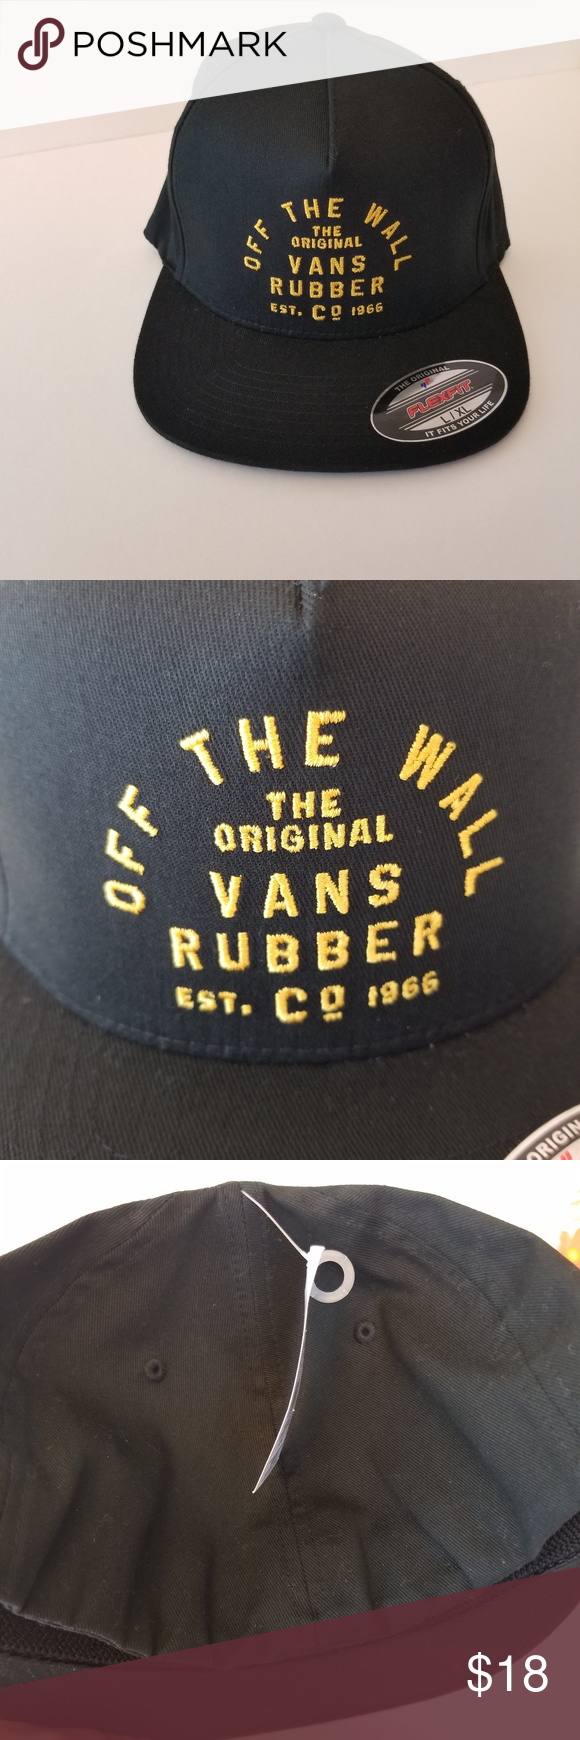 d78cba4c05c NWT Vans stacked rubber flexfit hat S M New with tags. Black hat with  yellow embroidered logo